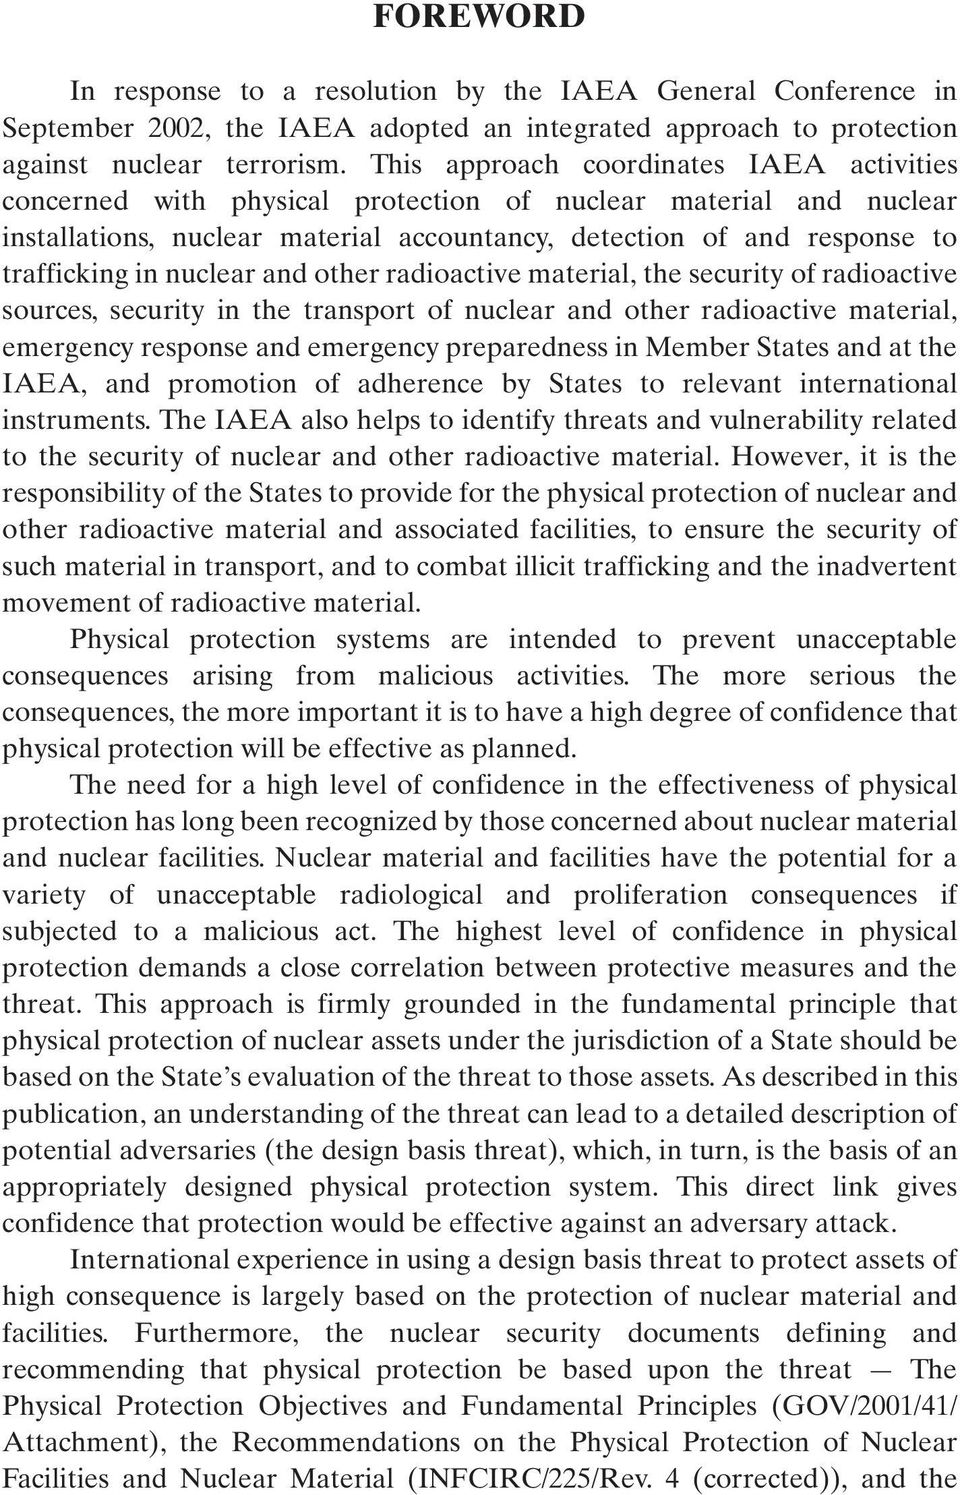 nuclear and other radioactive material, the security of radioactive sources, security in the transport of nuclear and other radioactive material, emergency response and emergency preparedness in